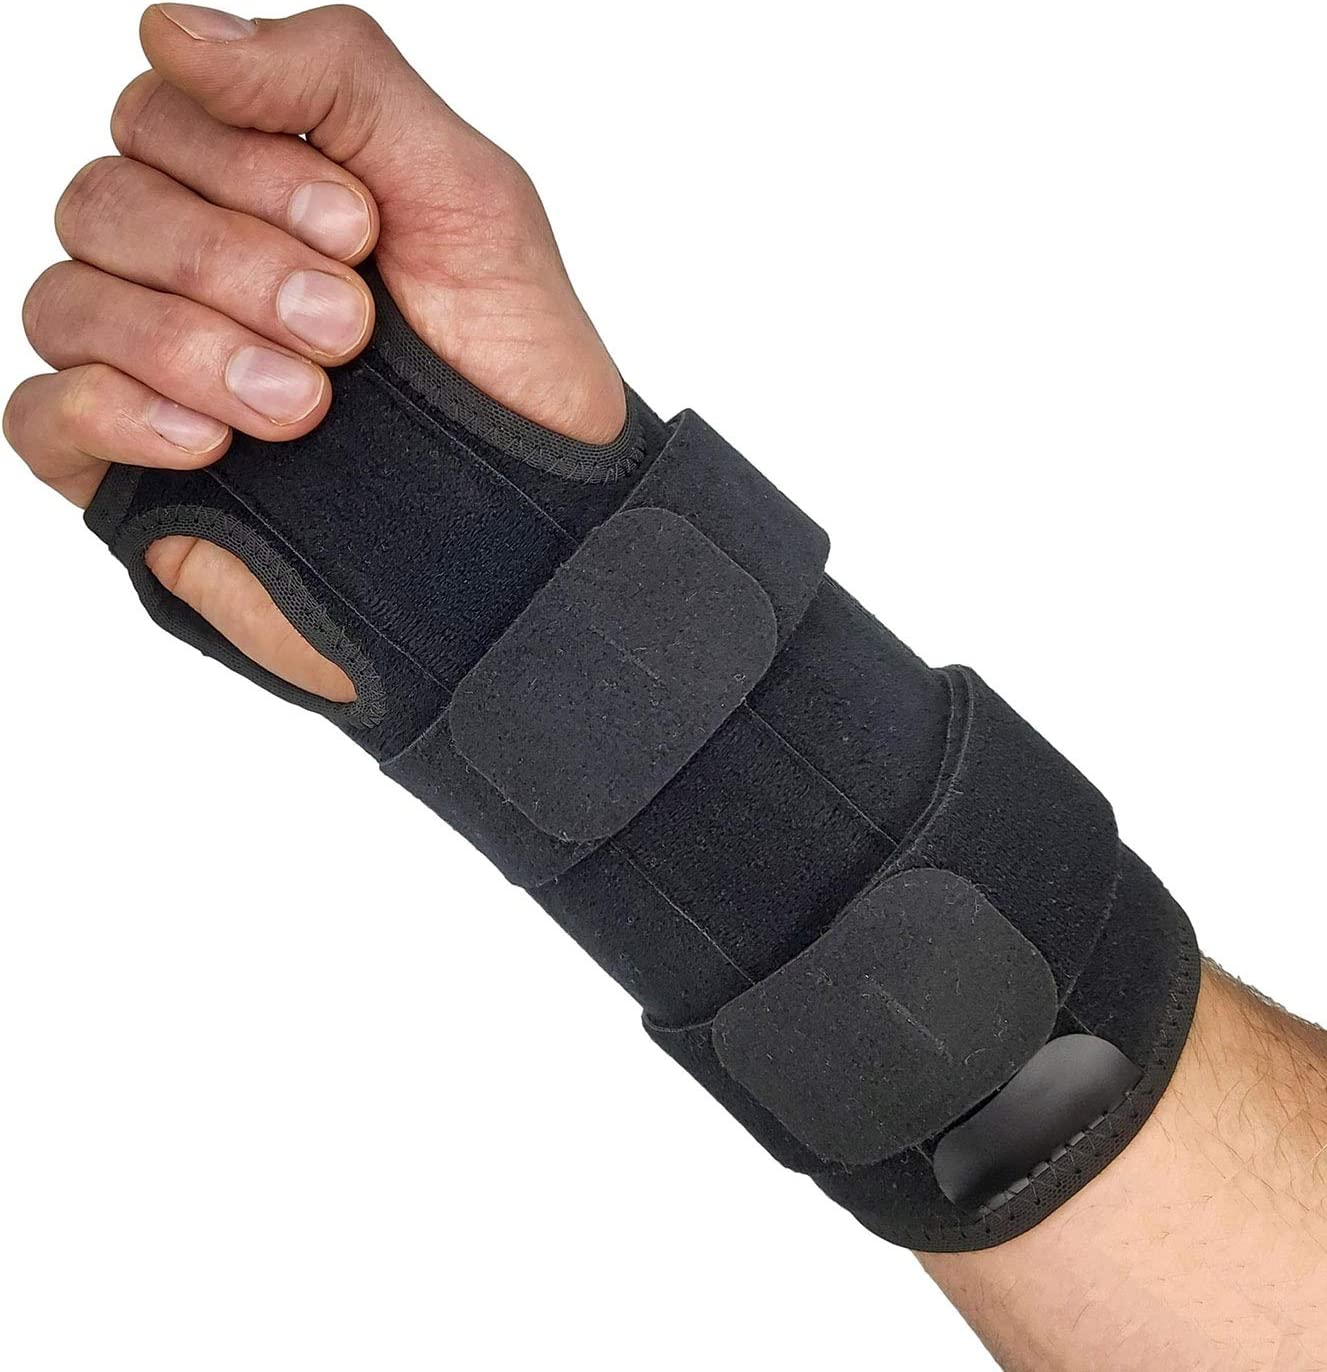 Wrist Brace for Carpal Tunnel Relief – Reversible Hand or Wrist Splint Carpal Tunnel Brace for Left or Right Hand Support Forearm Brace & Wrist Compression for Arthritis Wrist Tendonitis (Large): Health & Personal Care